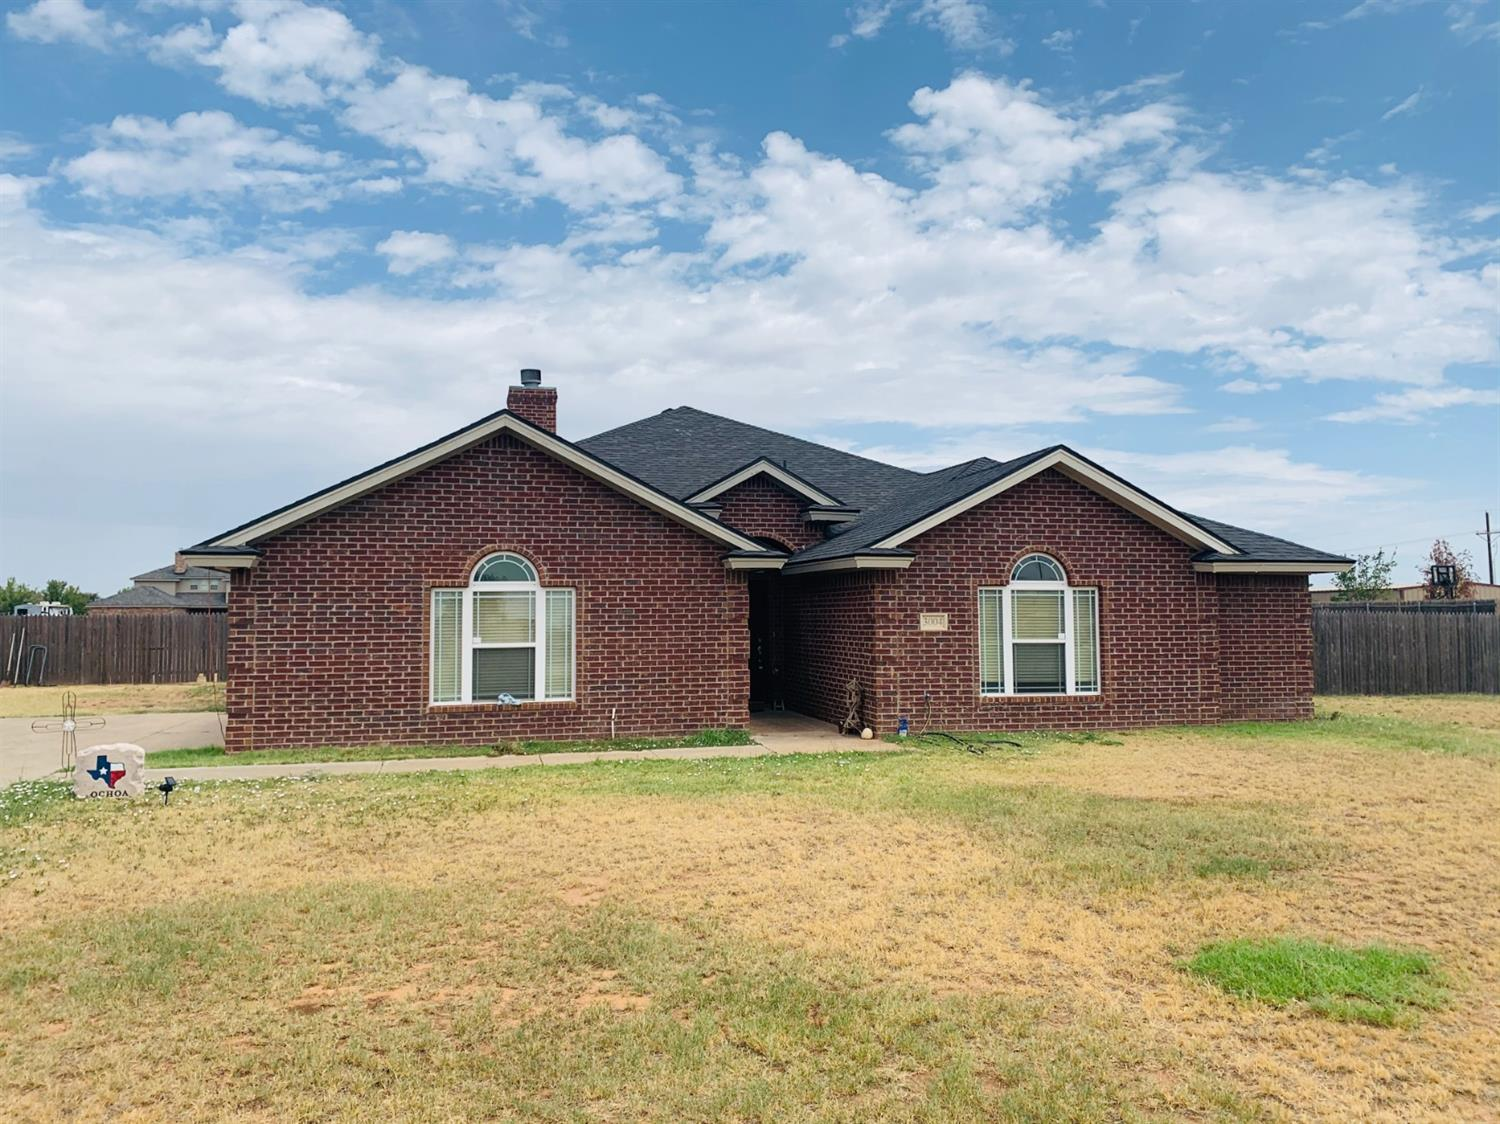 Reduced !!! Nice 4/2/2 in Timber ridge.  1.2 acres,  Isolated master with large open kitchen.